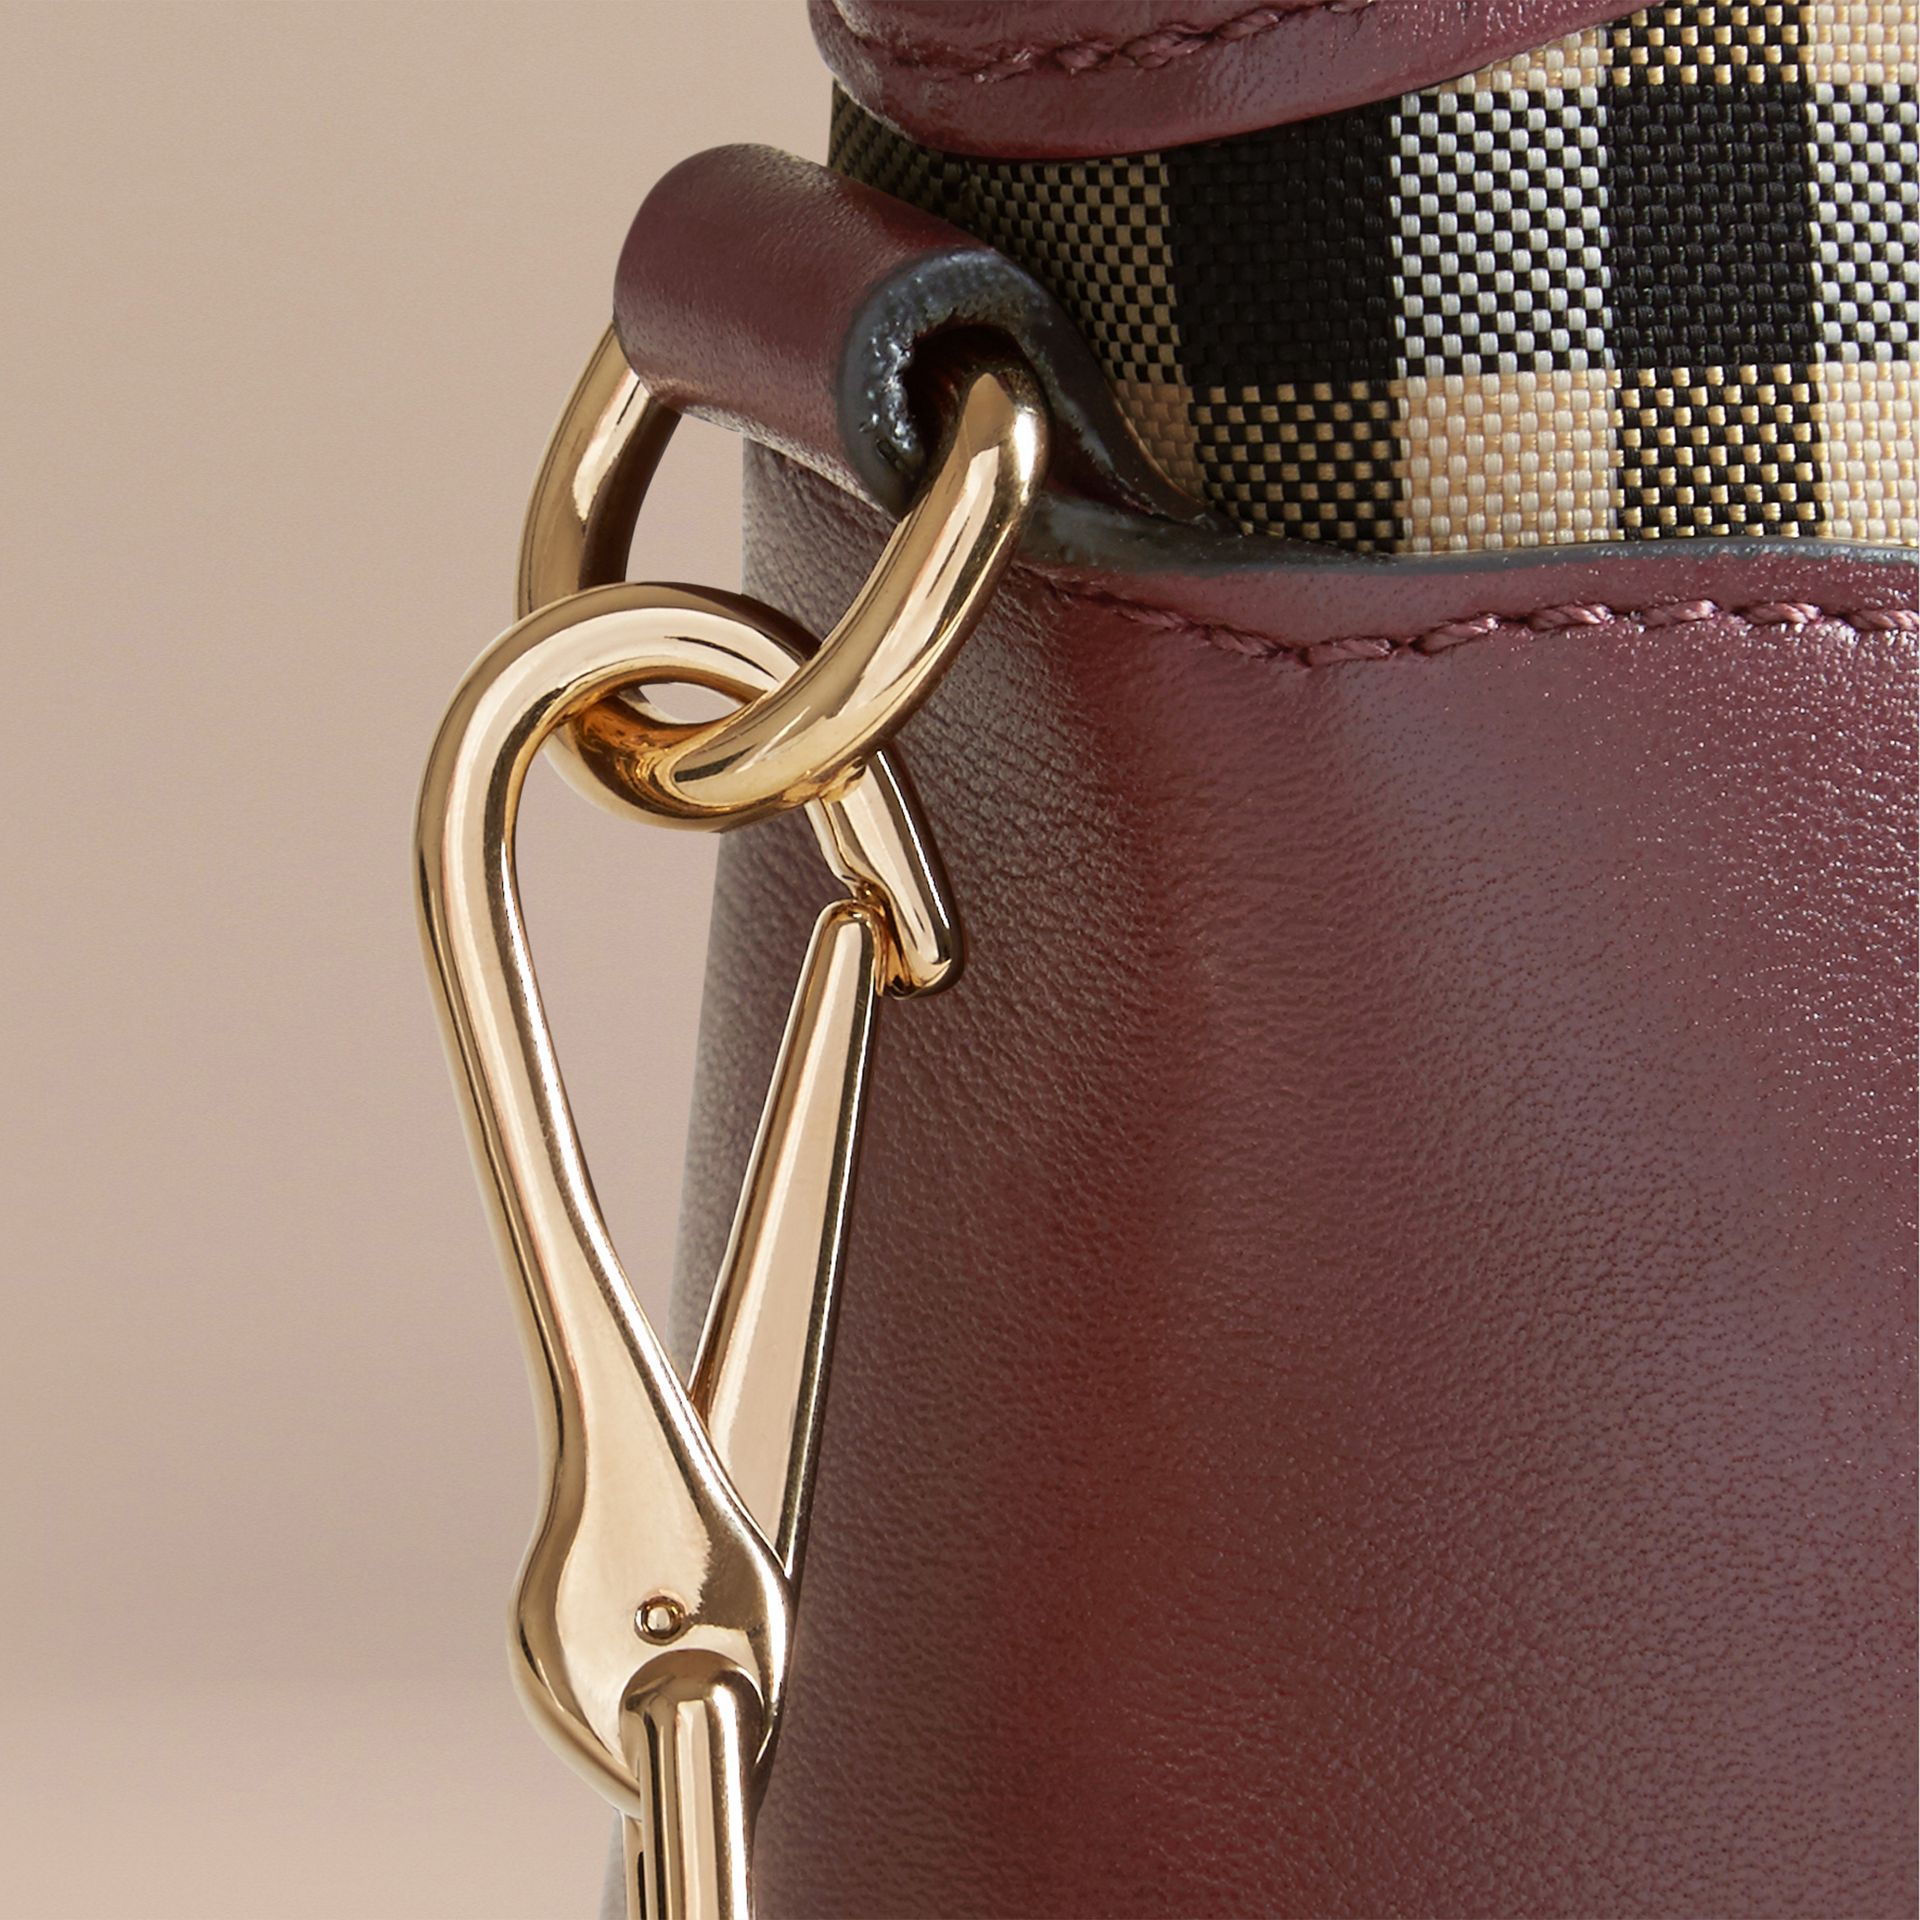 Honey/deep claret Horseferry Check and Leather Clutch Bag Honey/deep Claret - gallery image 7